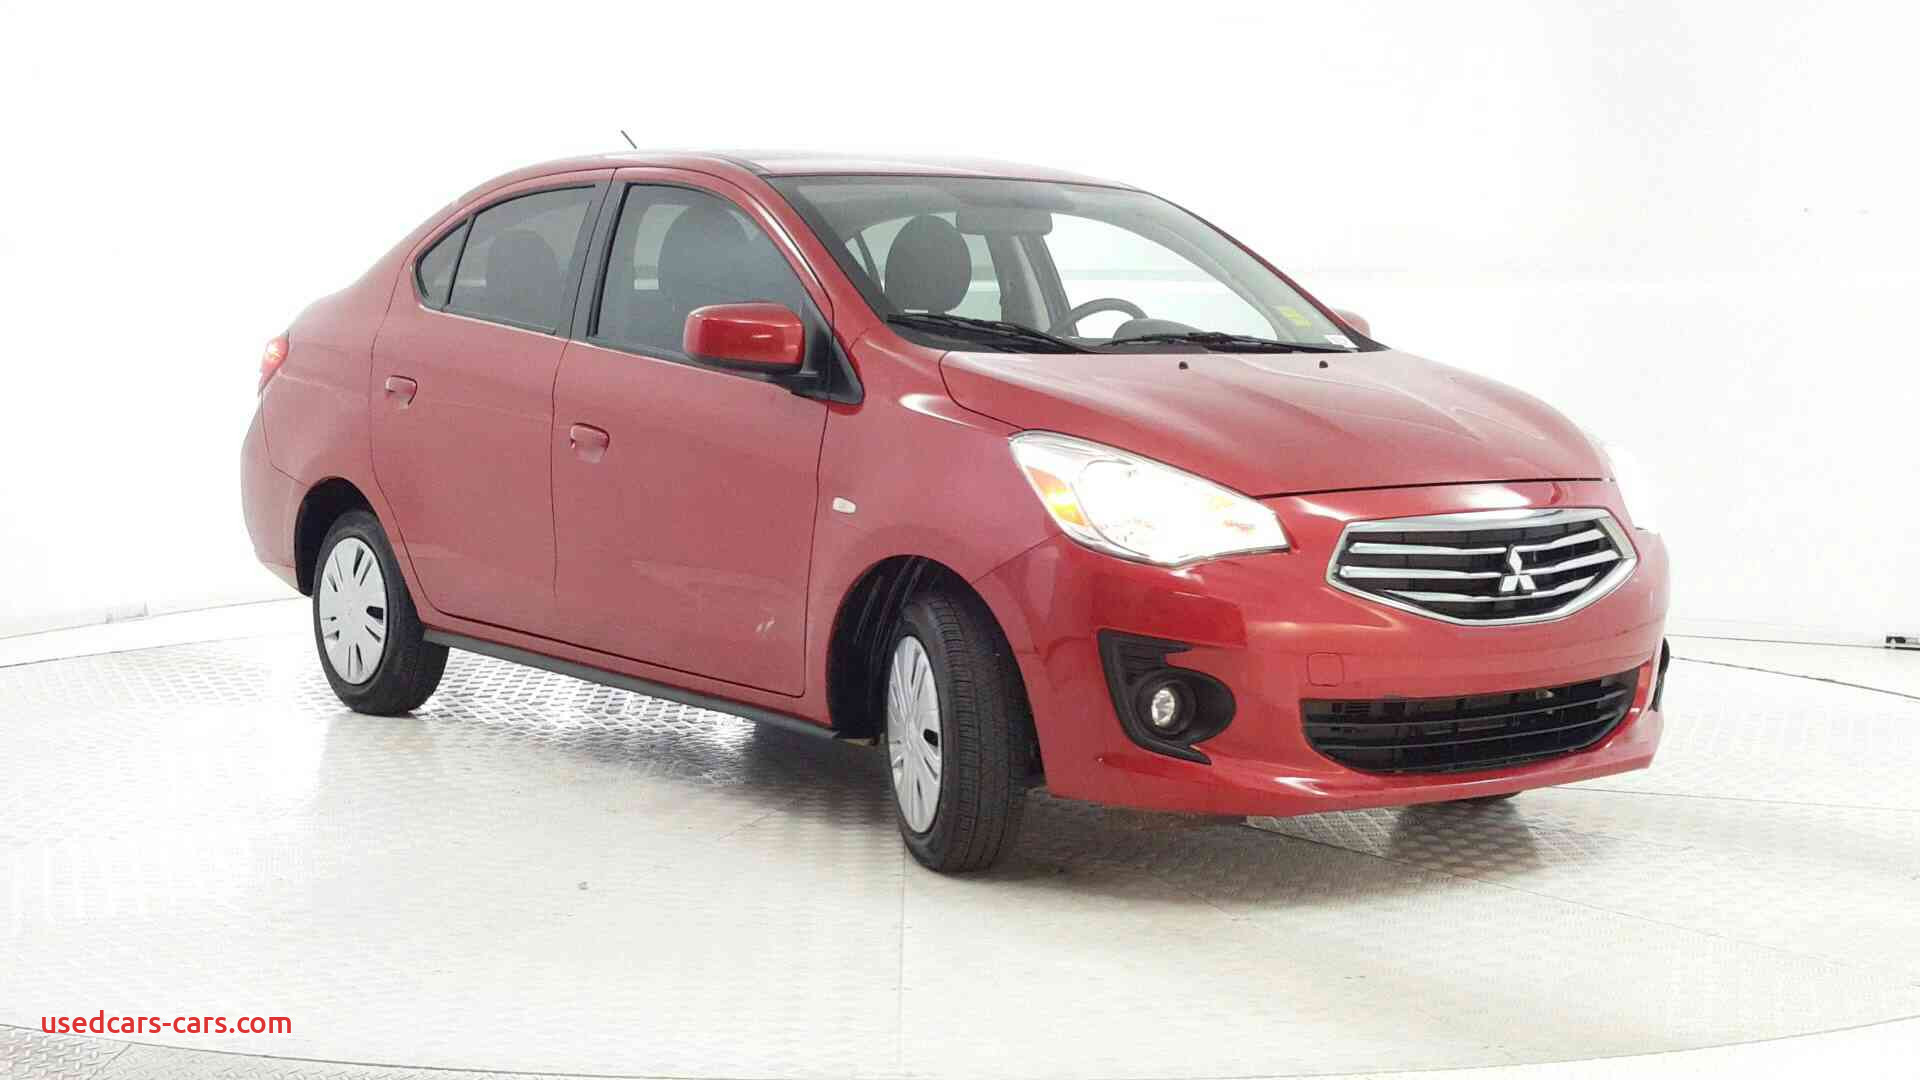 Used Cars Near Me Under 1000 Beautiful Used Cars for Sale Under $